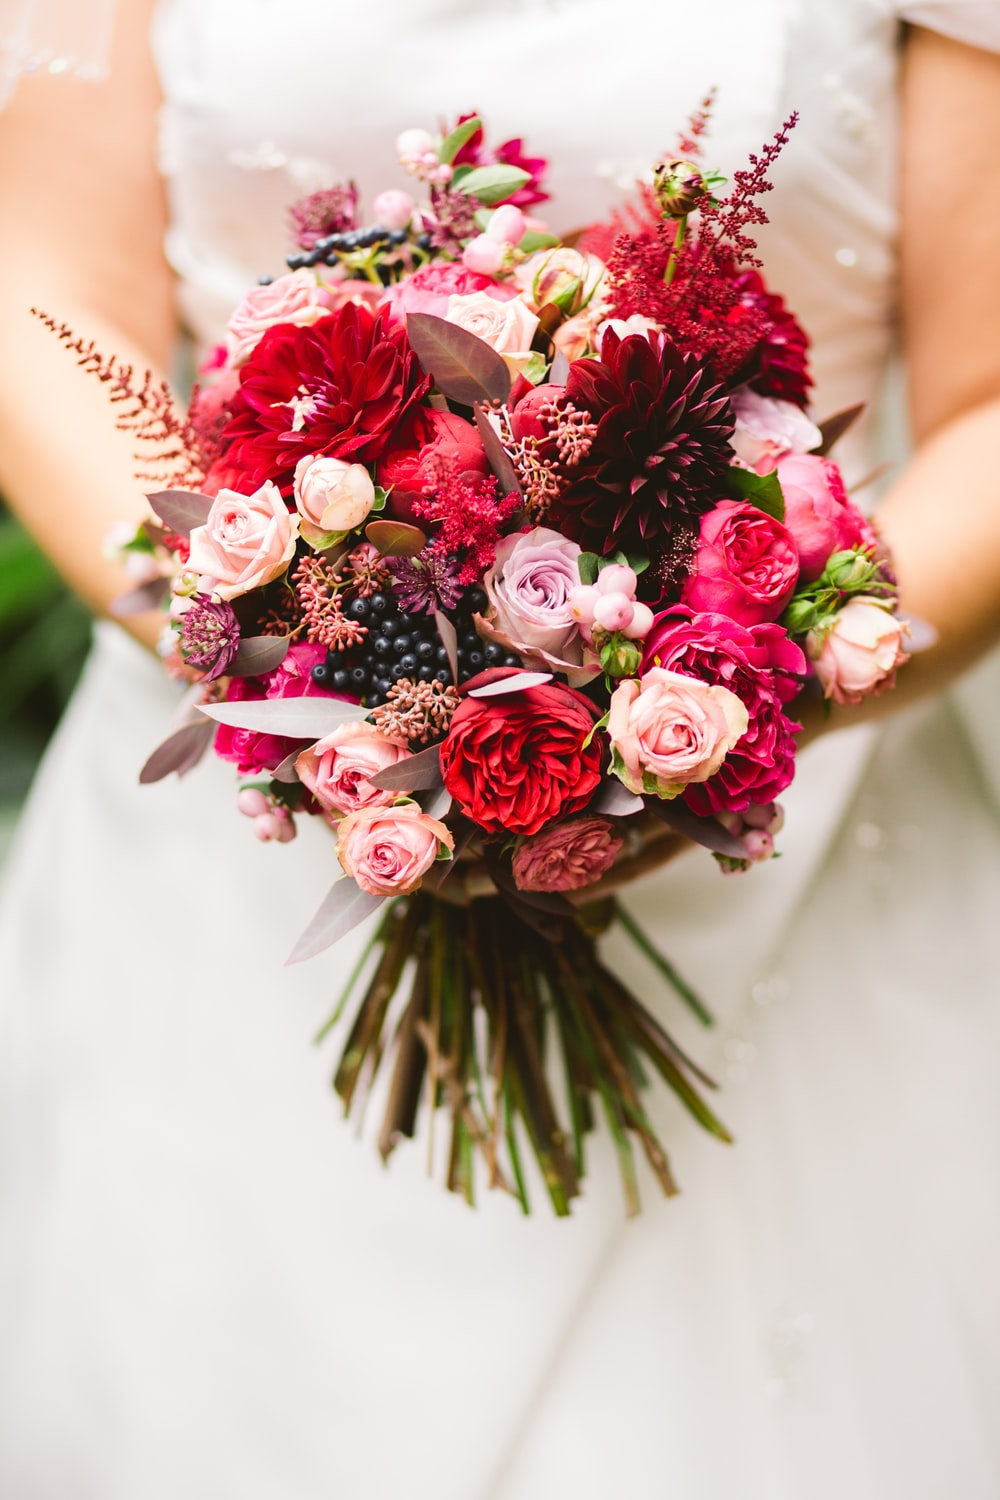 100 flower images hq download free flower pictures on unsplash bride holding flower bouquet mightylinksfo